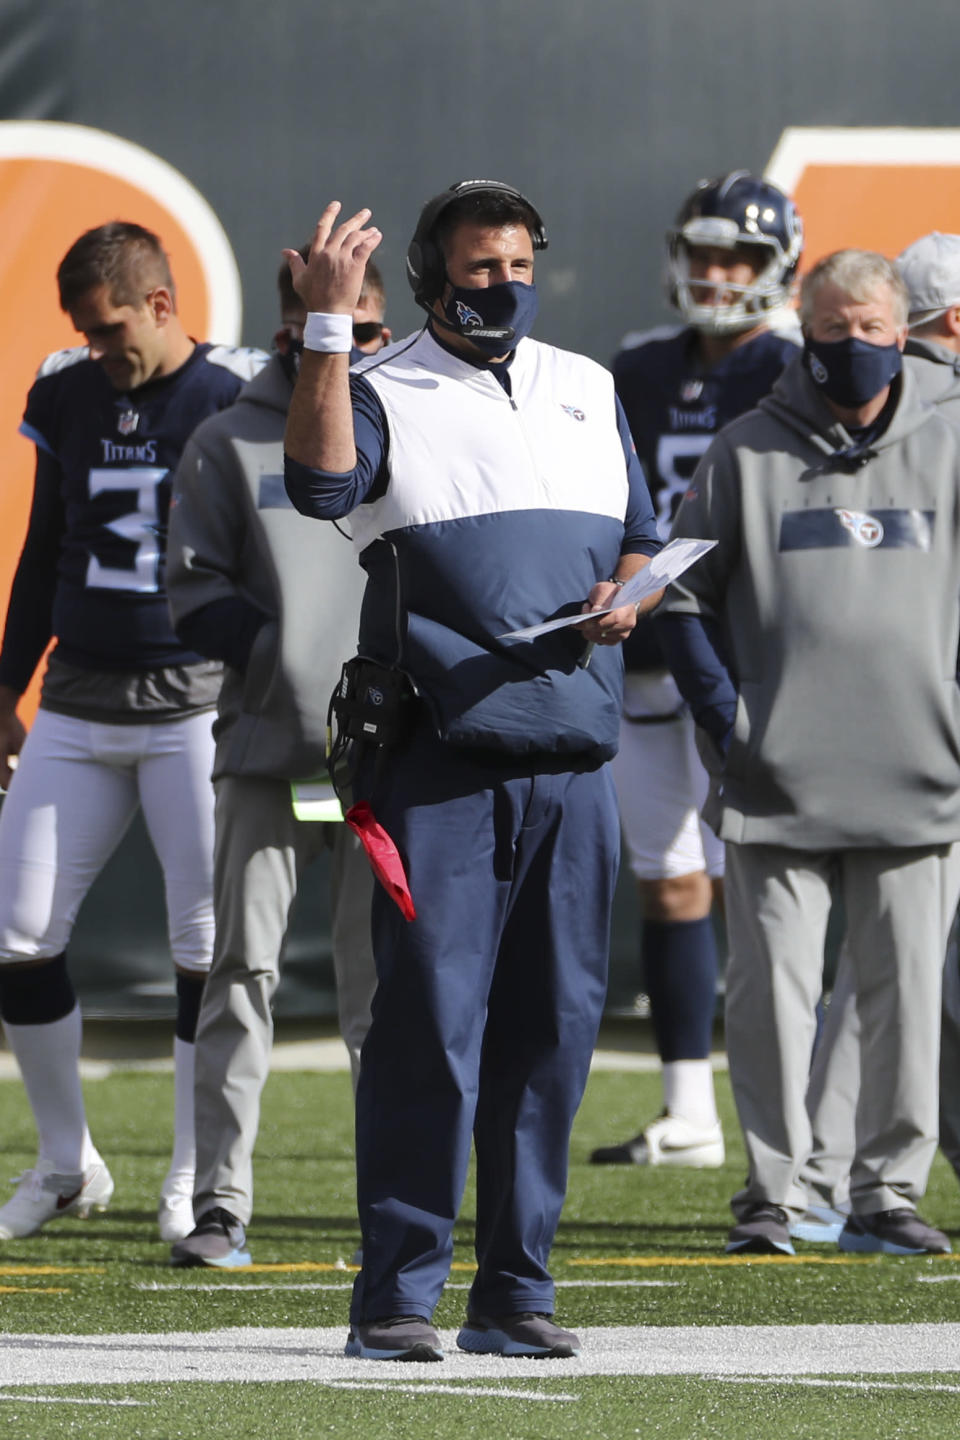 Tennessee Titans head coach Mike Vrabel questions a call during the first half of an NFL football game against the Cincinnati Bengals, Sunday, Nov. 1, 2020, in Cincinnati. (AP Photo/Jay LaPrete)